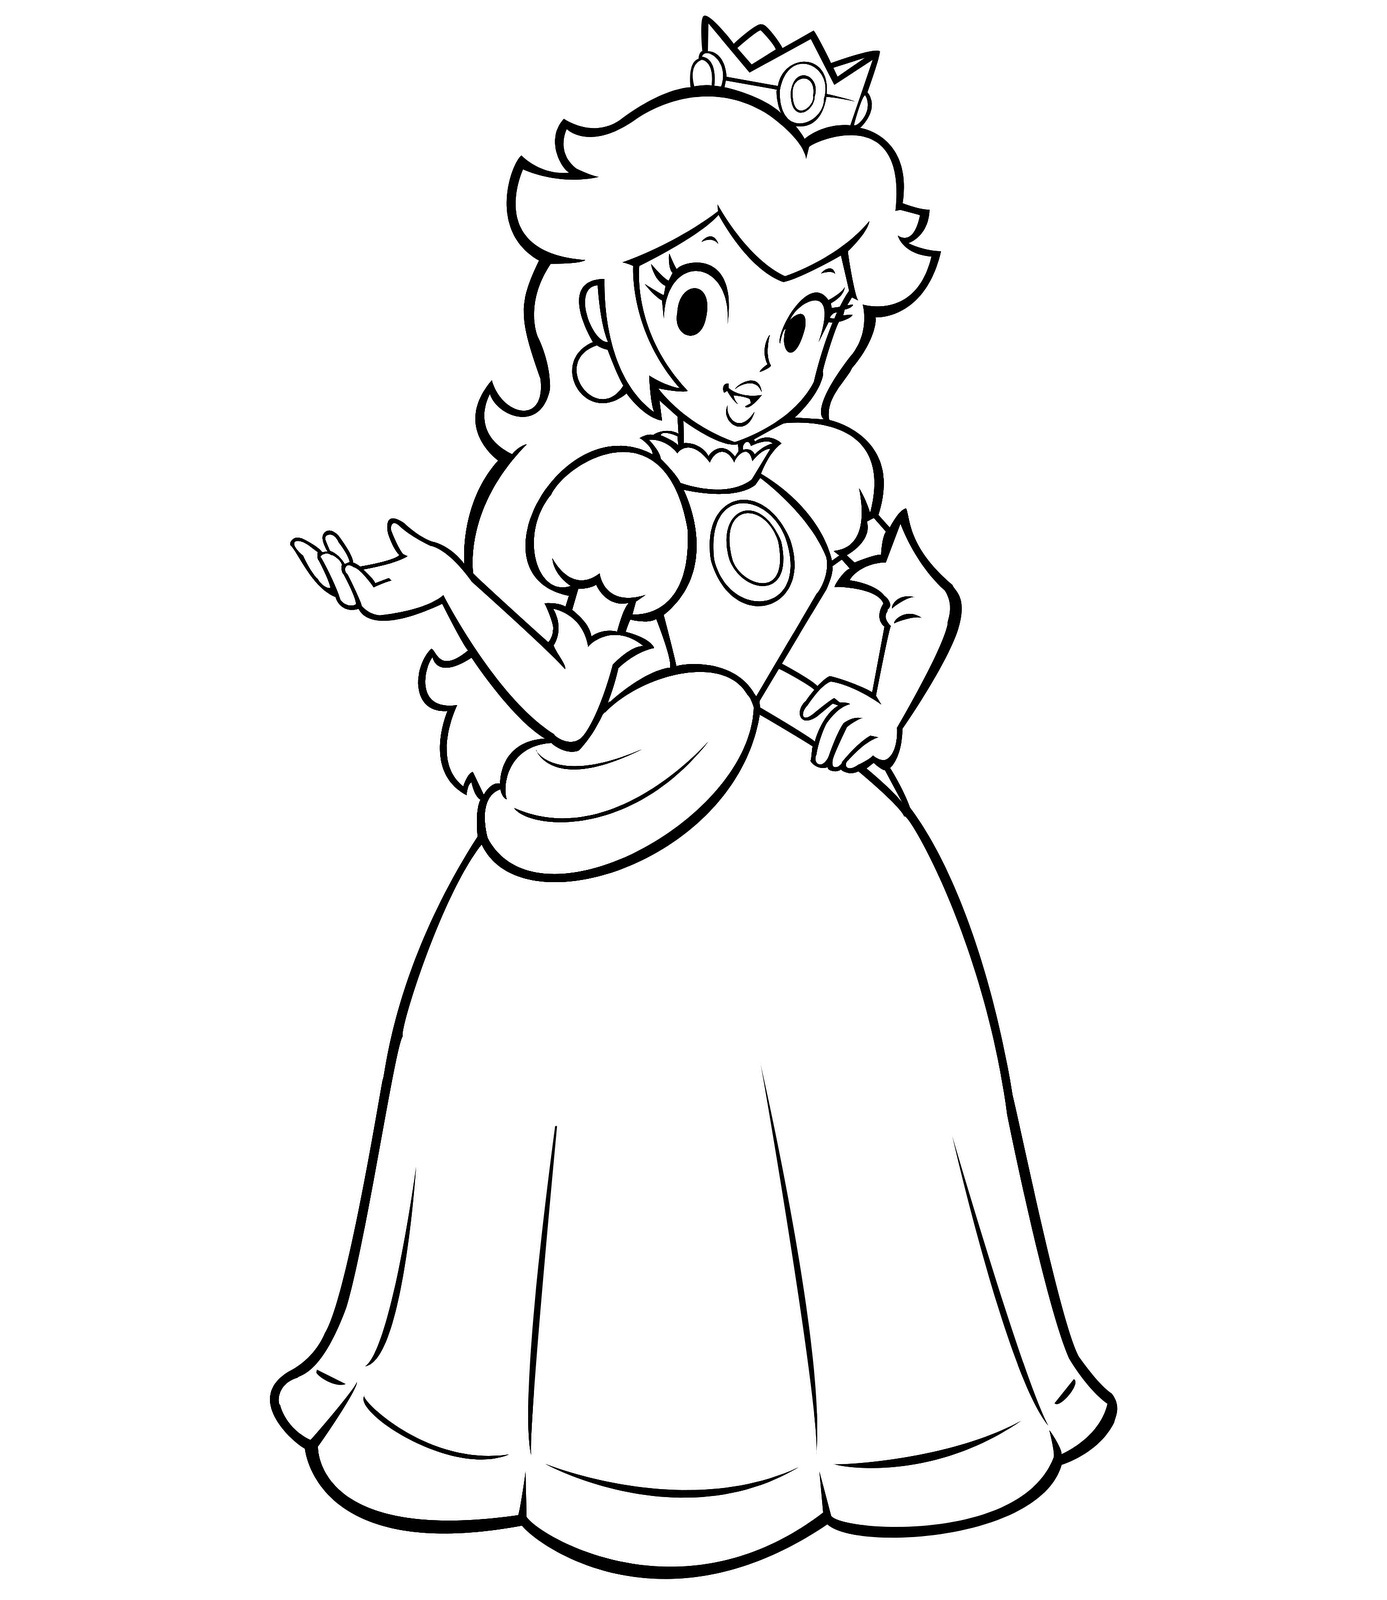 prncess coloring pages - photo#23